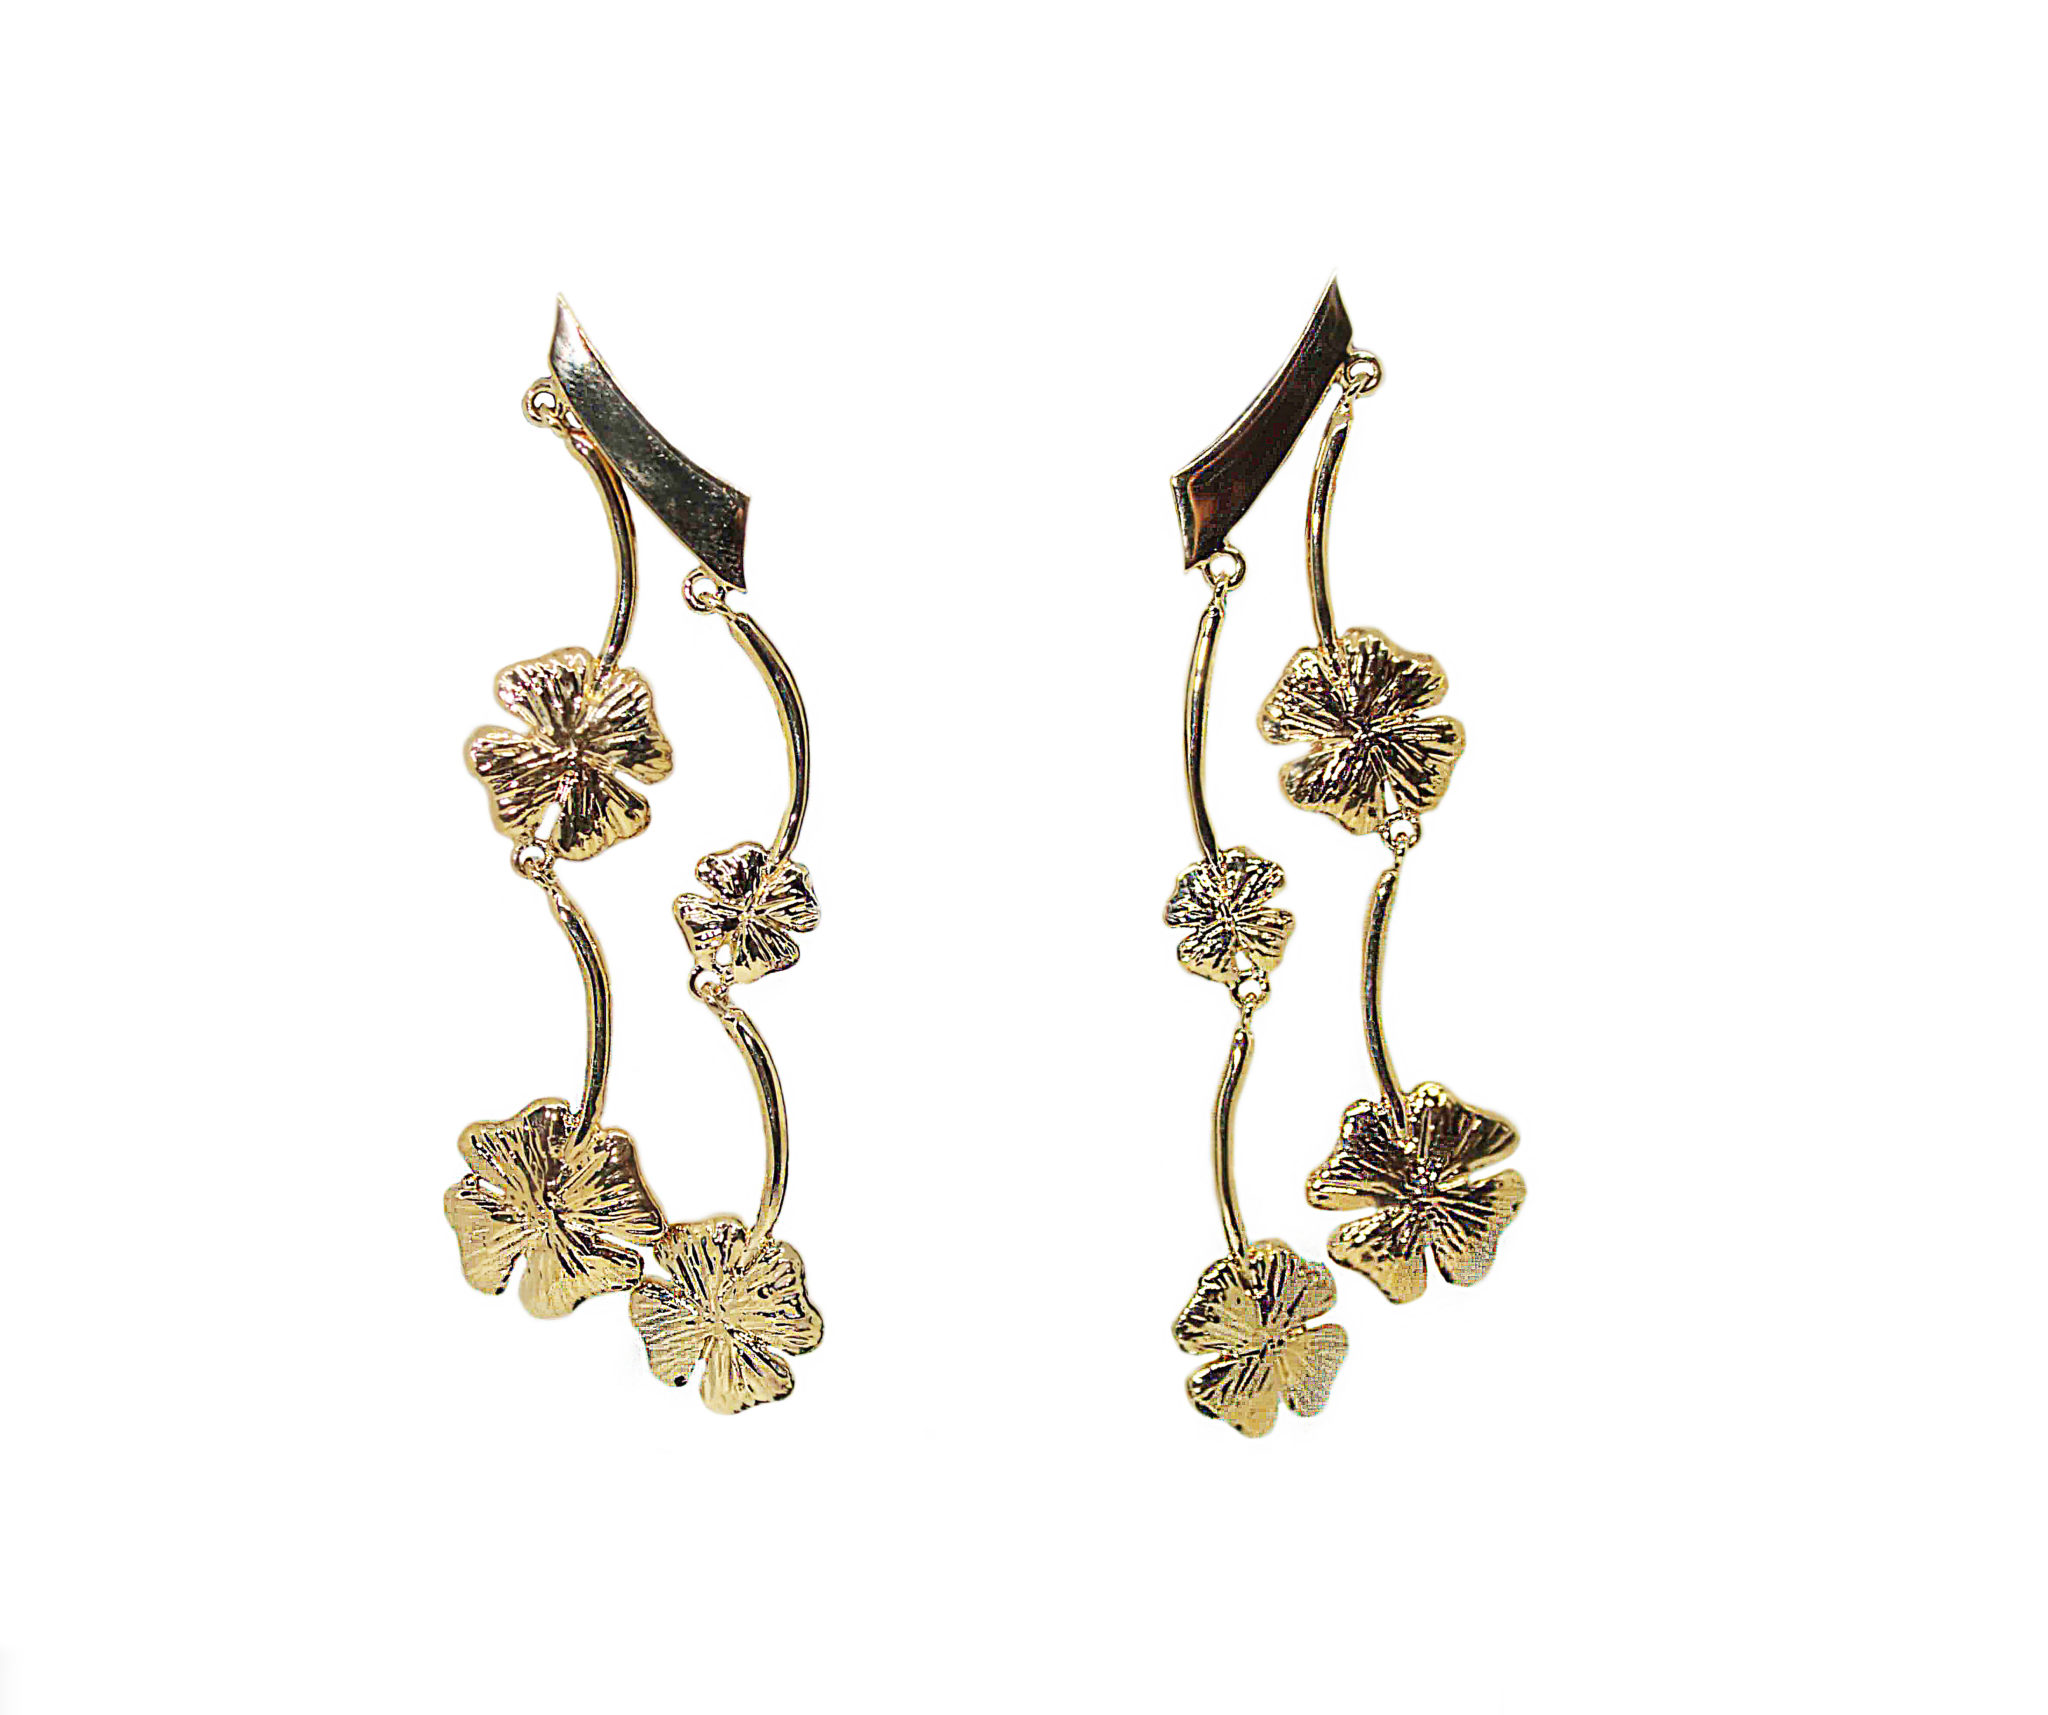 Bronze earrings with 4 four-leaf clovers